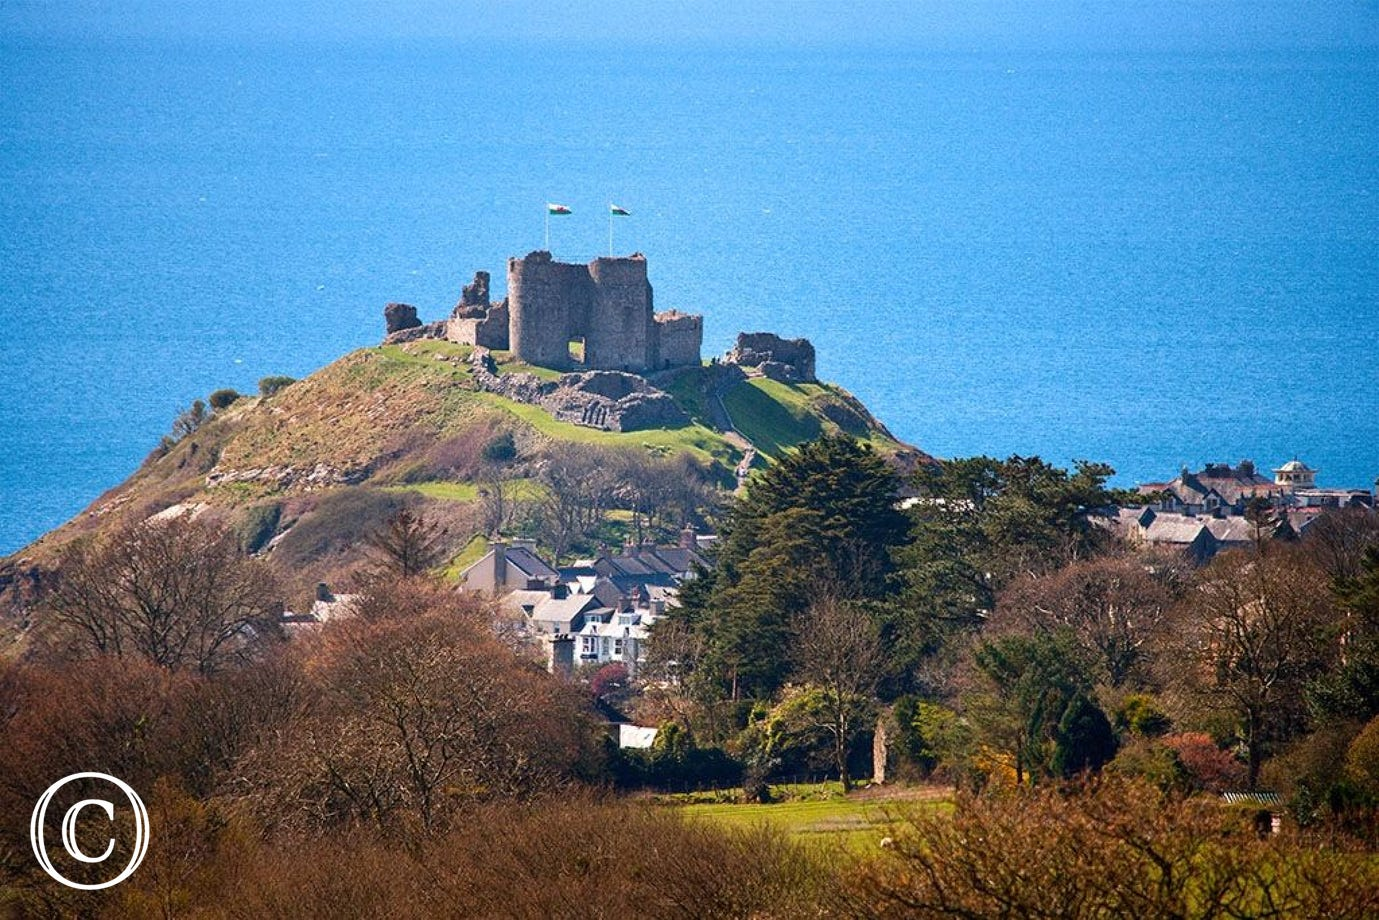 Visit the glorious Welsh castle at Cricieth and relax on its two beaches